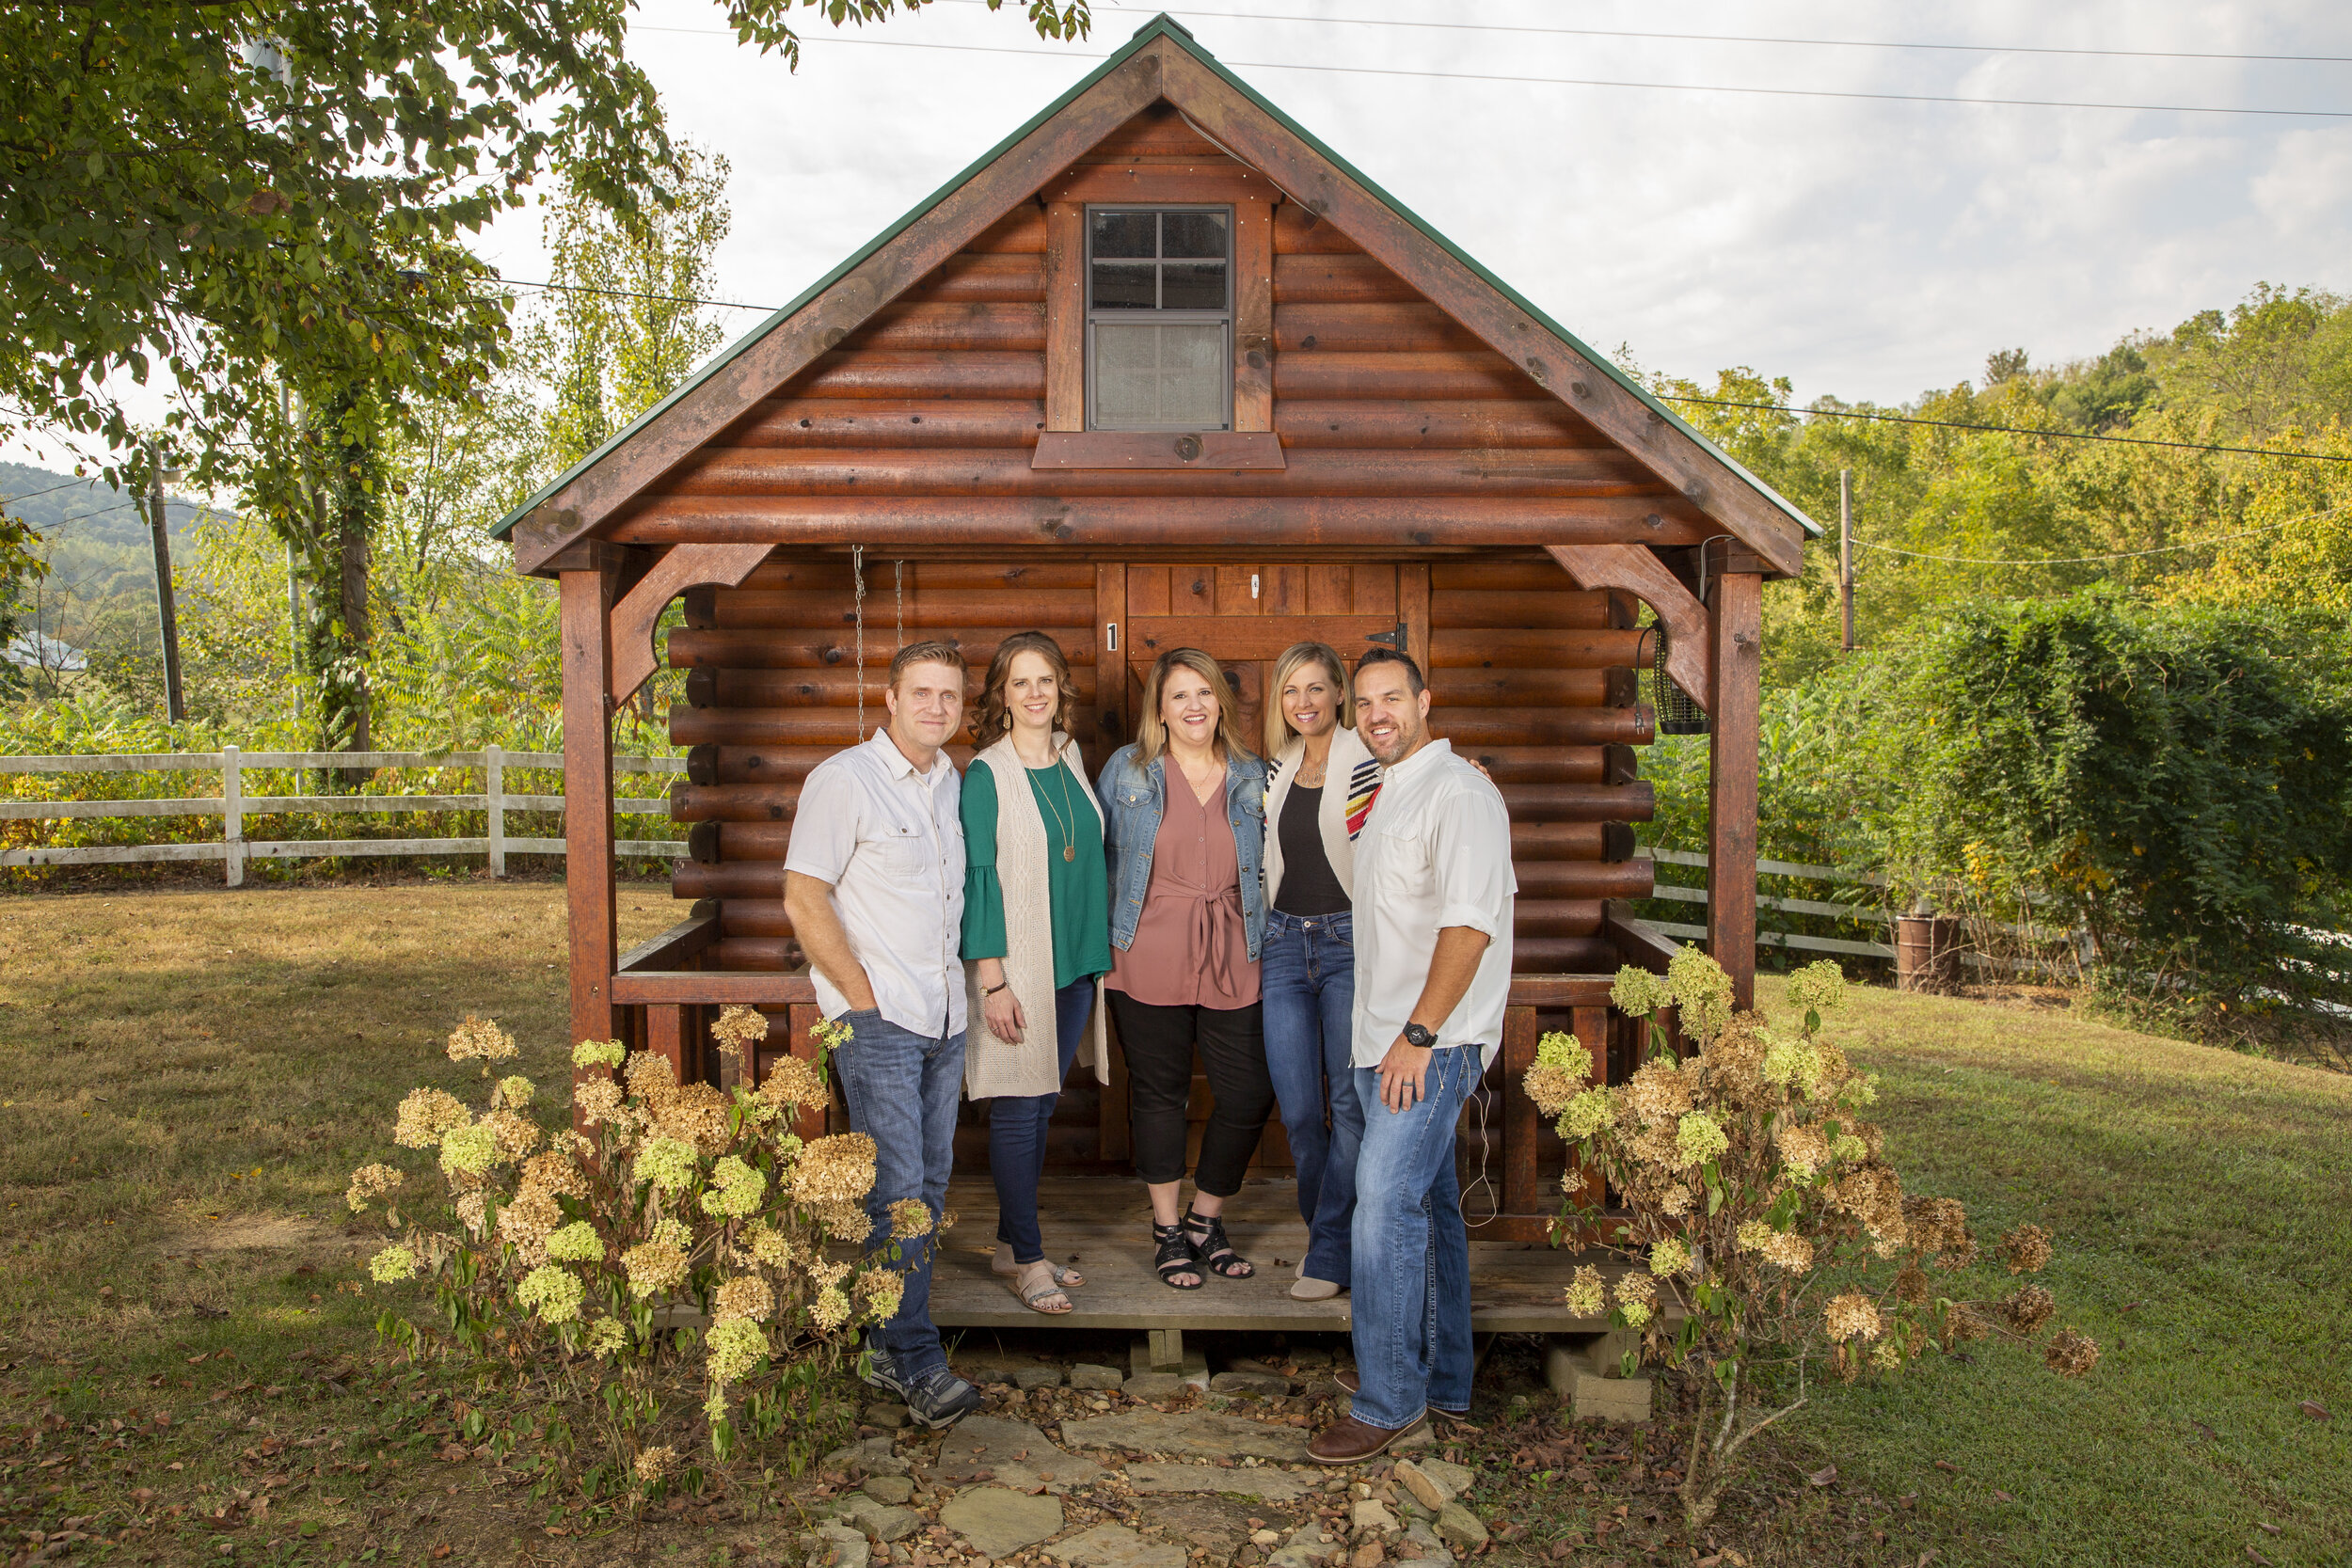 Our wonderful speakers for the day included (from l to r) Steve & Lori Chatman, Becky Davidson, and Casey & TJ Overstreet.